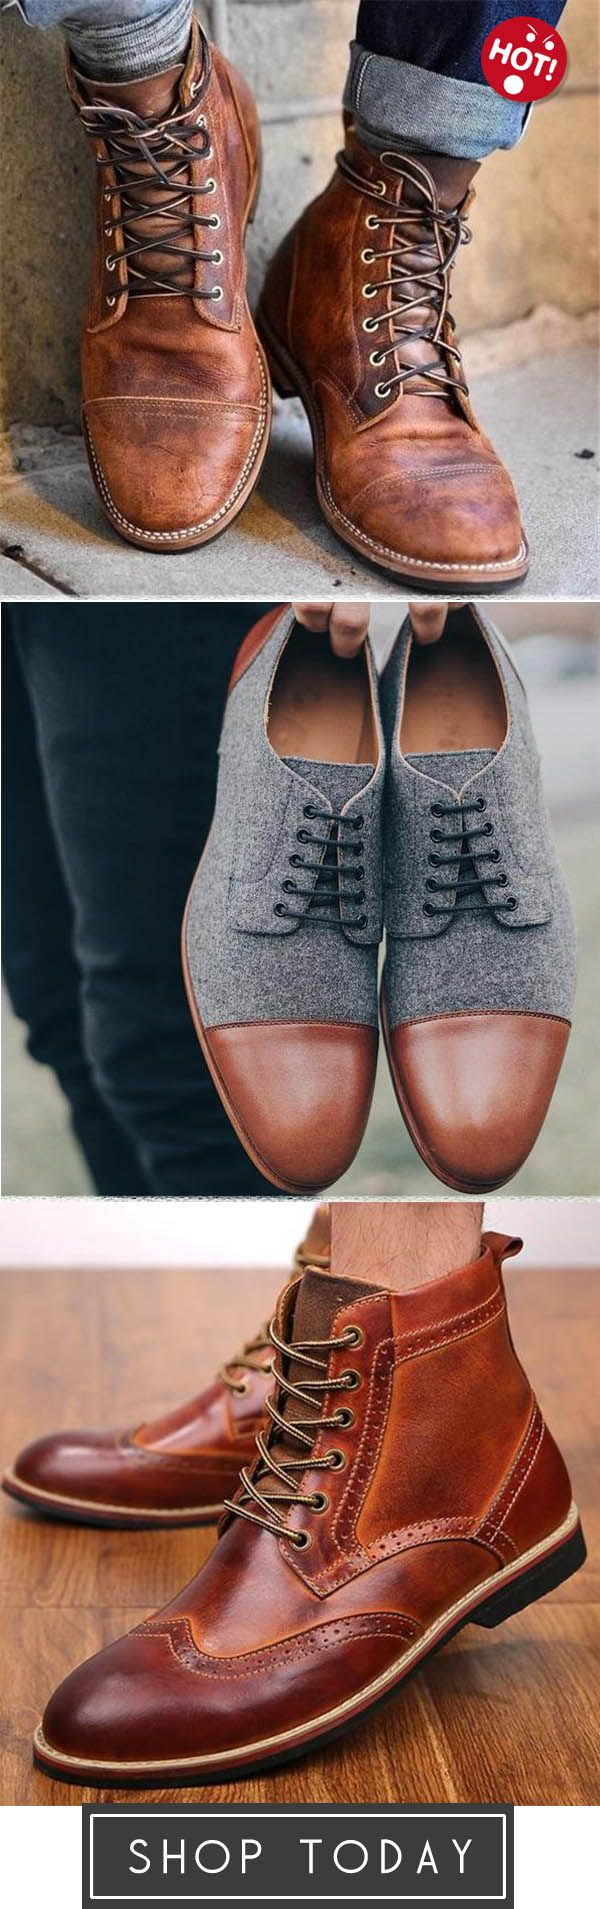 Men Vintage Leather Ankle Boots Menhill Super Comfortable Office Weekends Shoes Retro Leather Men Carved Flow Dress Shoes Men Boots Men Fitness Fashion Outfits